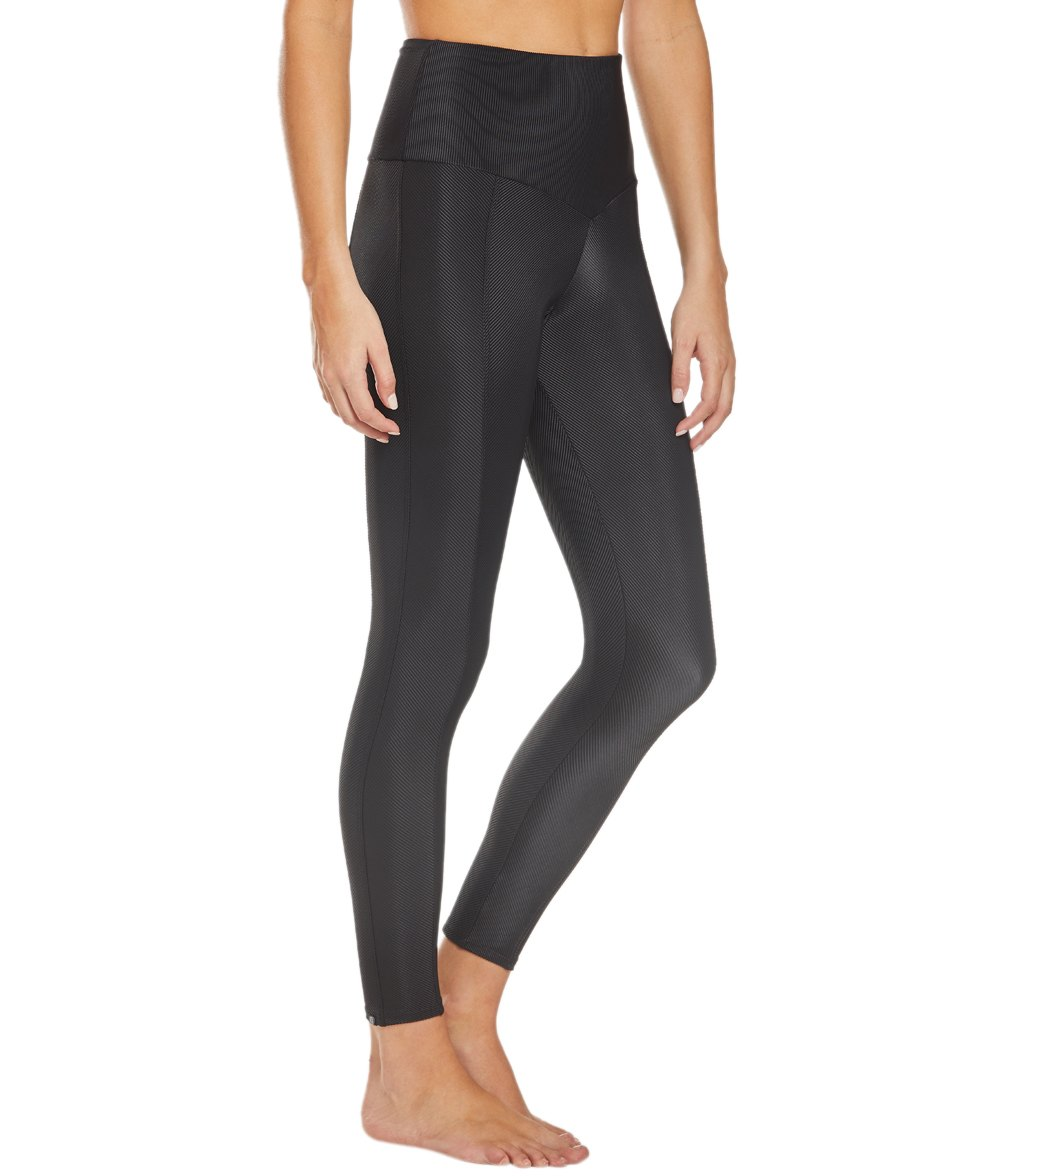 Onzie Women's Ribbed Sweetheart 7/8 Yoga Leggings - Black X-Small/Small Spandex